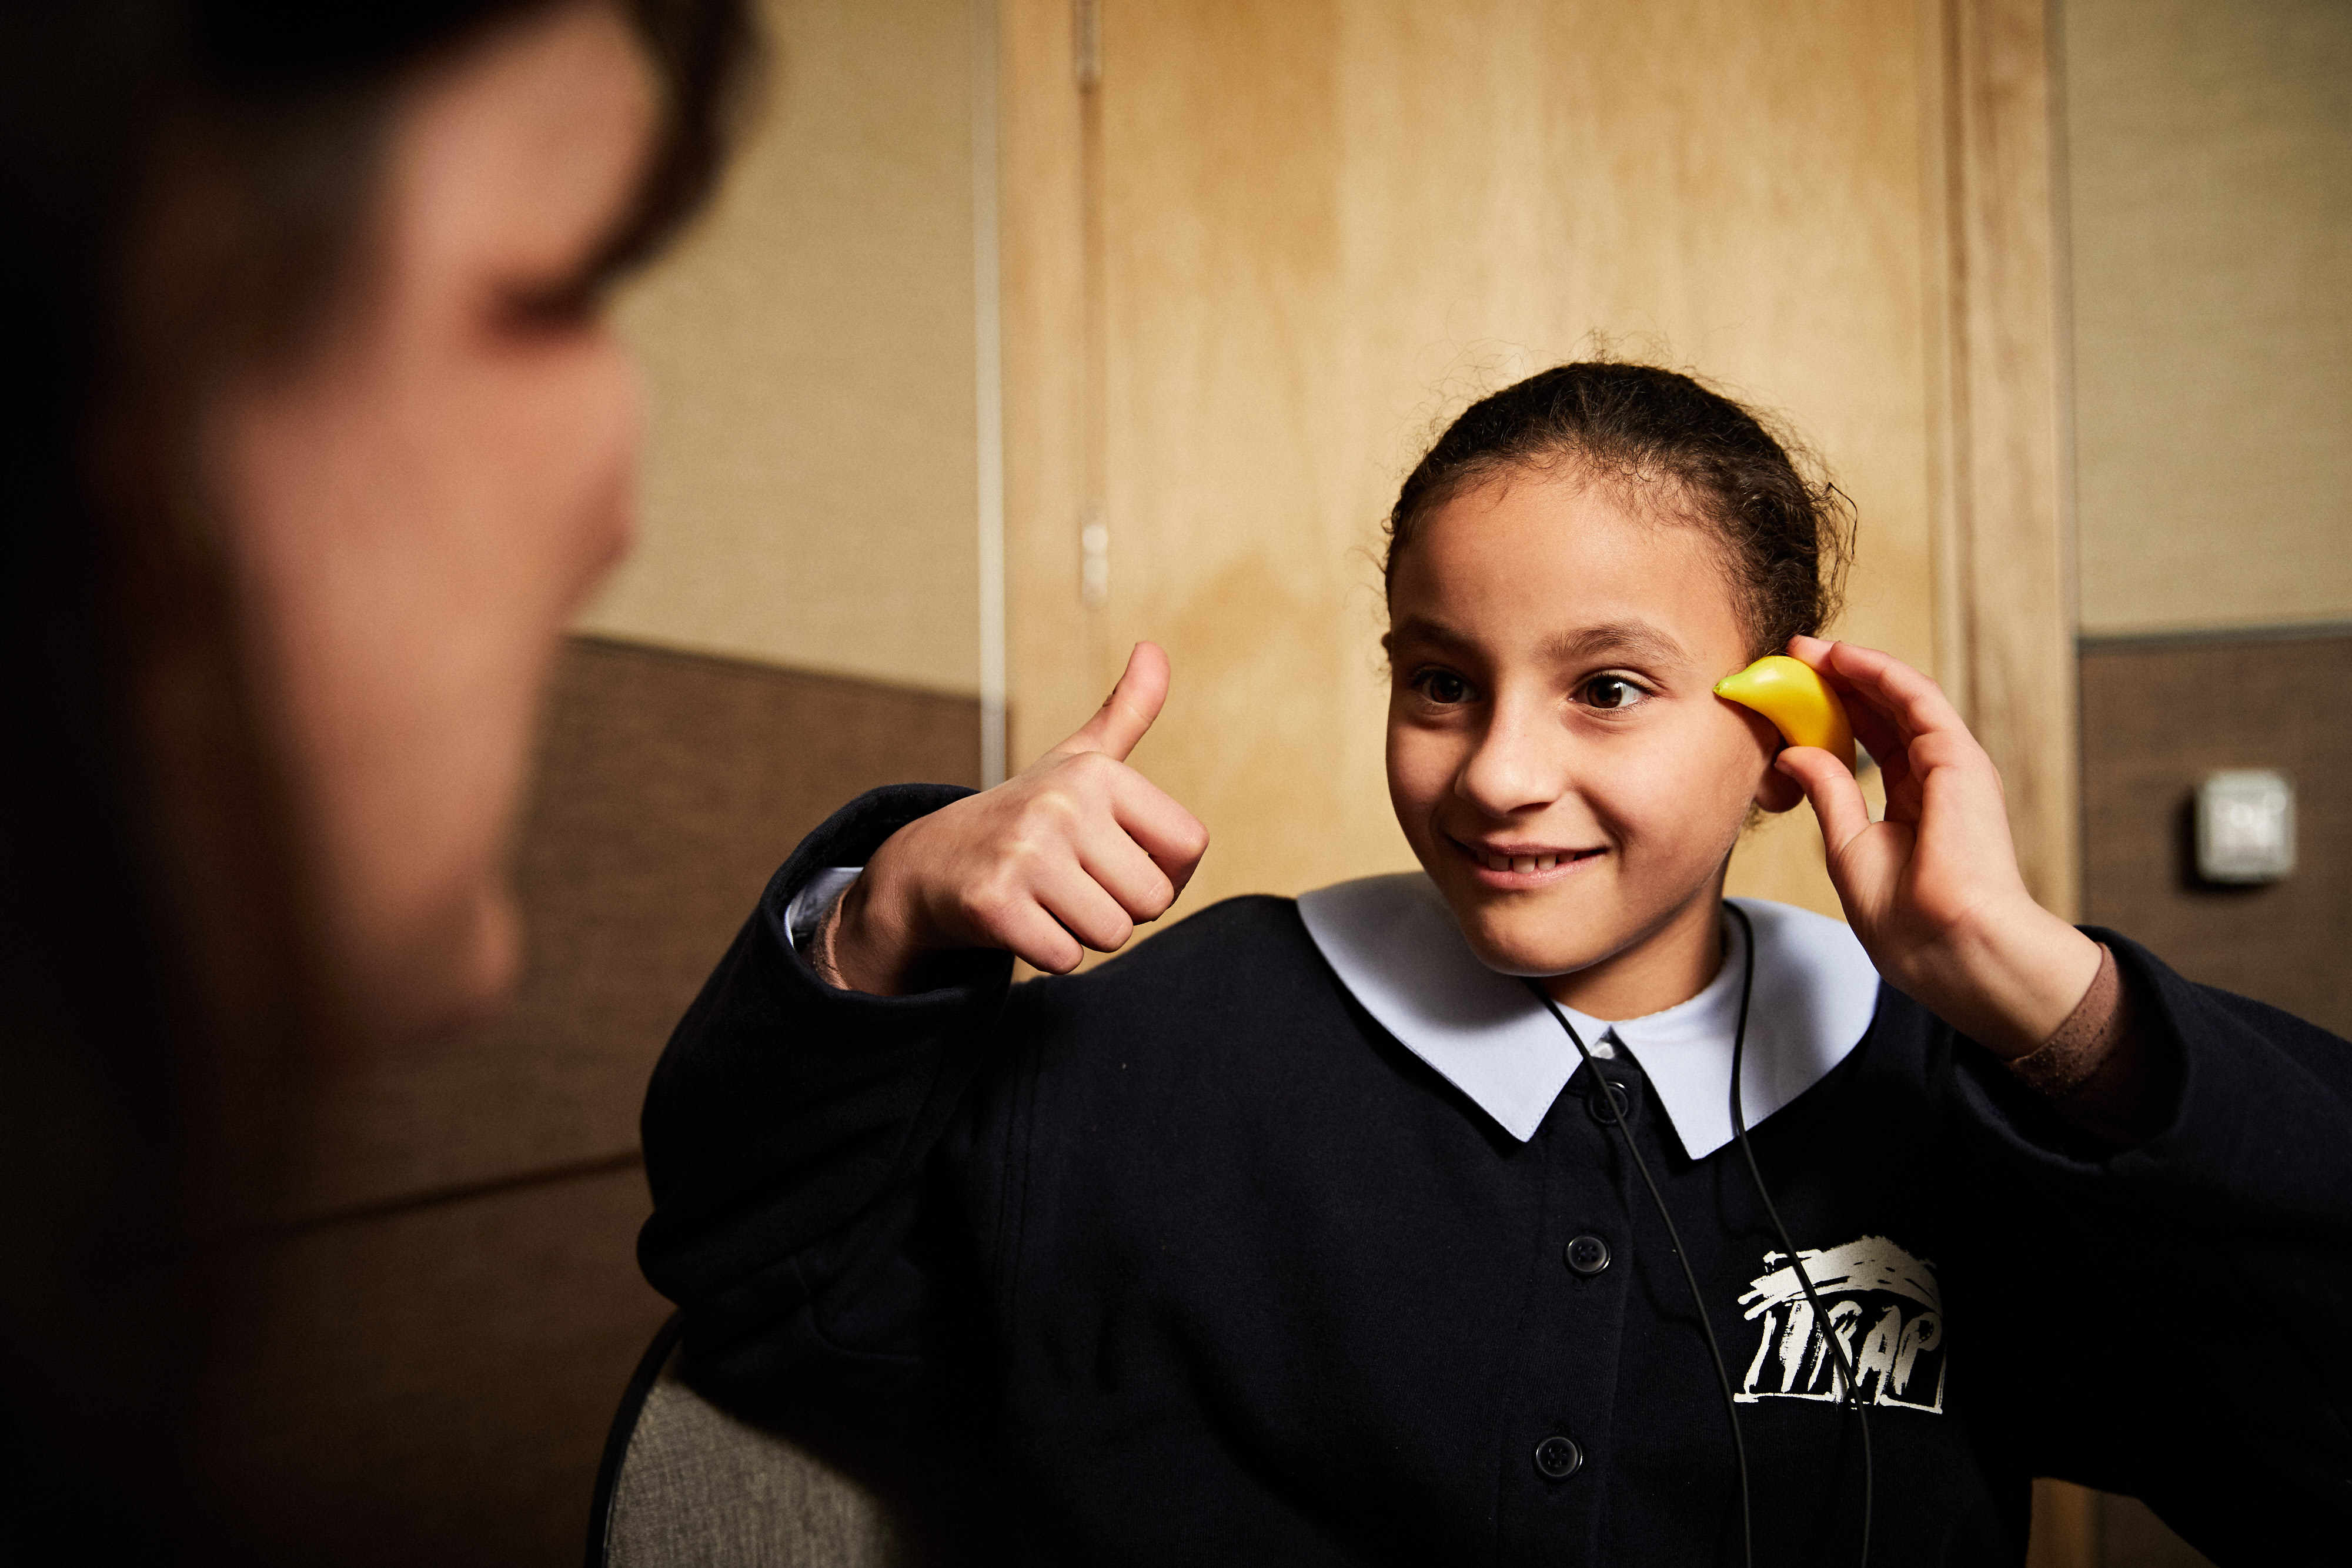 Chahama hears well with her new Phonak hearing aids.